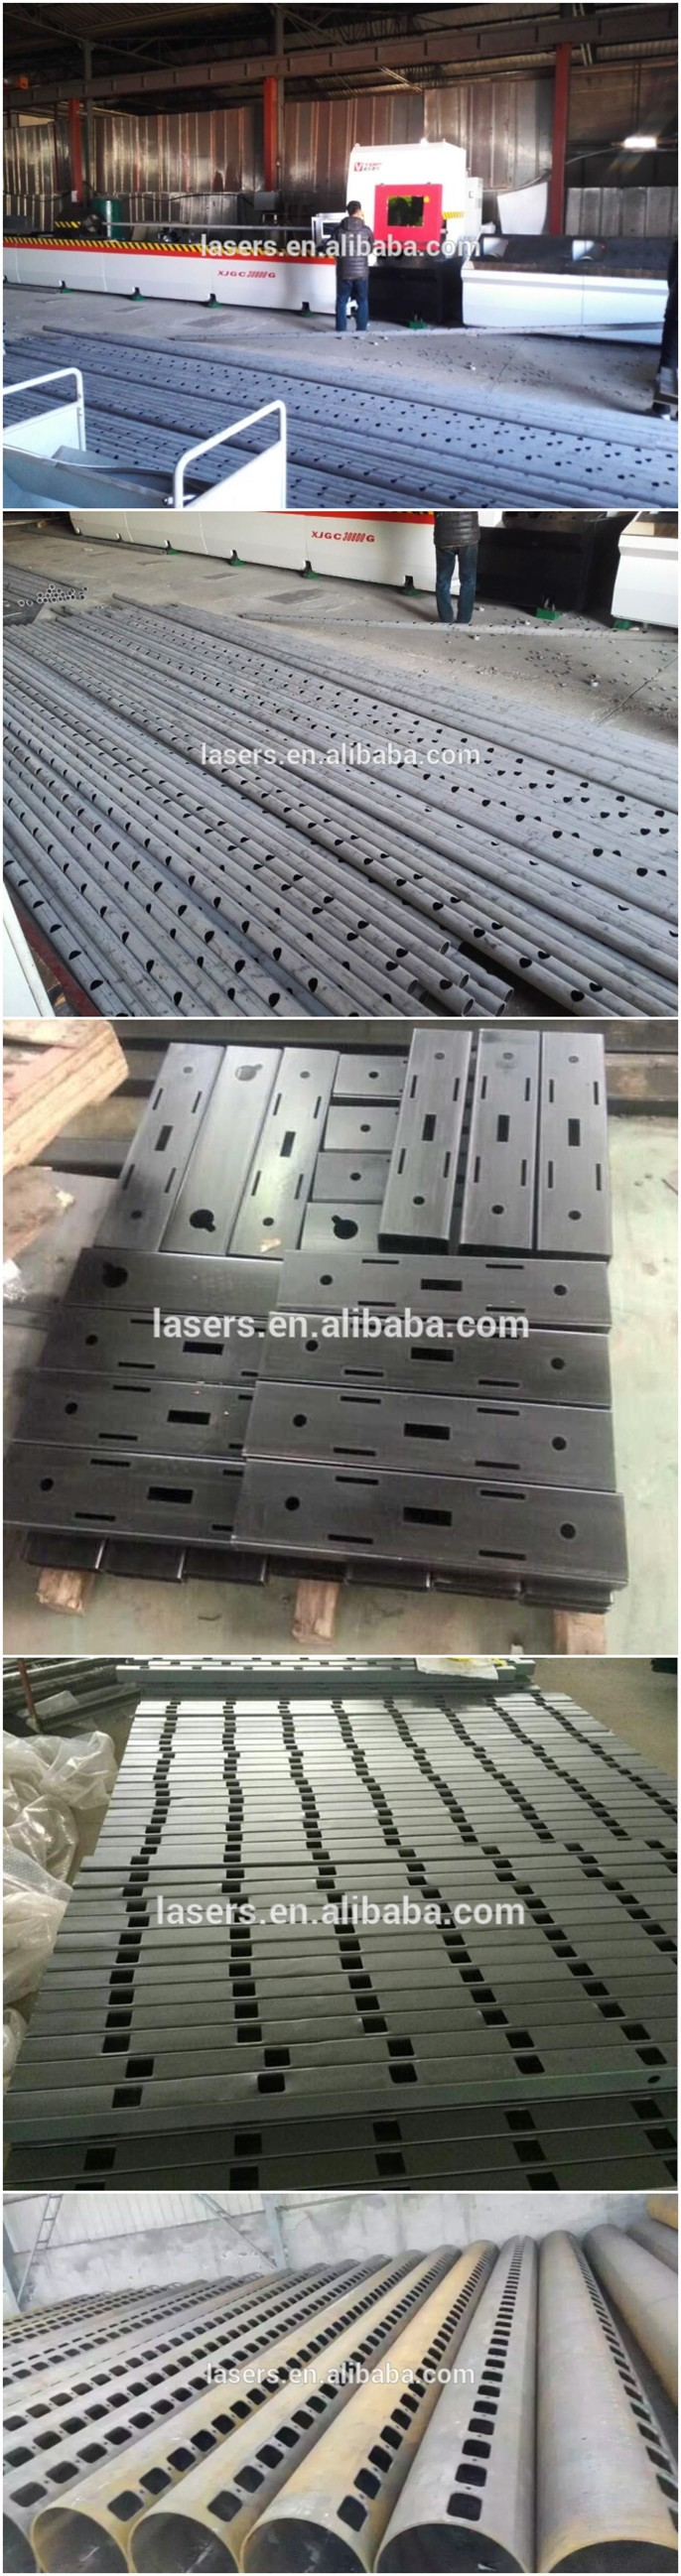 12mm carbon steel cutting machine | 5mm stainless steel laser cutter | 4mm mild steel cutting